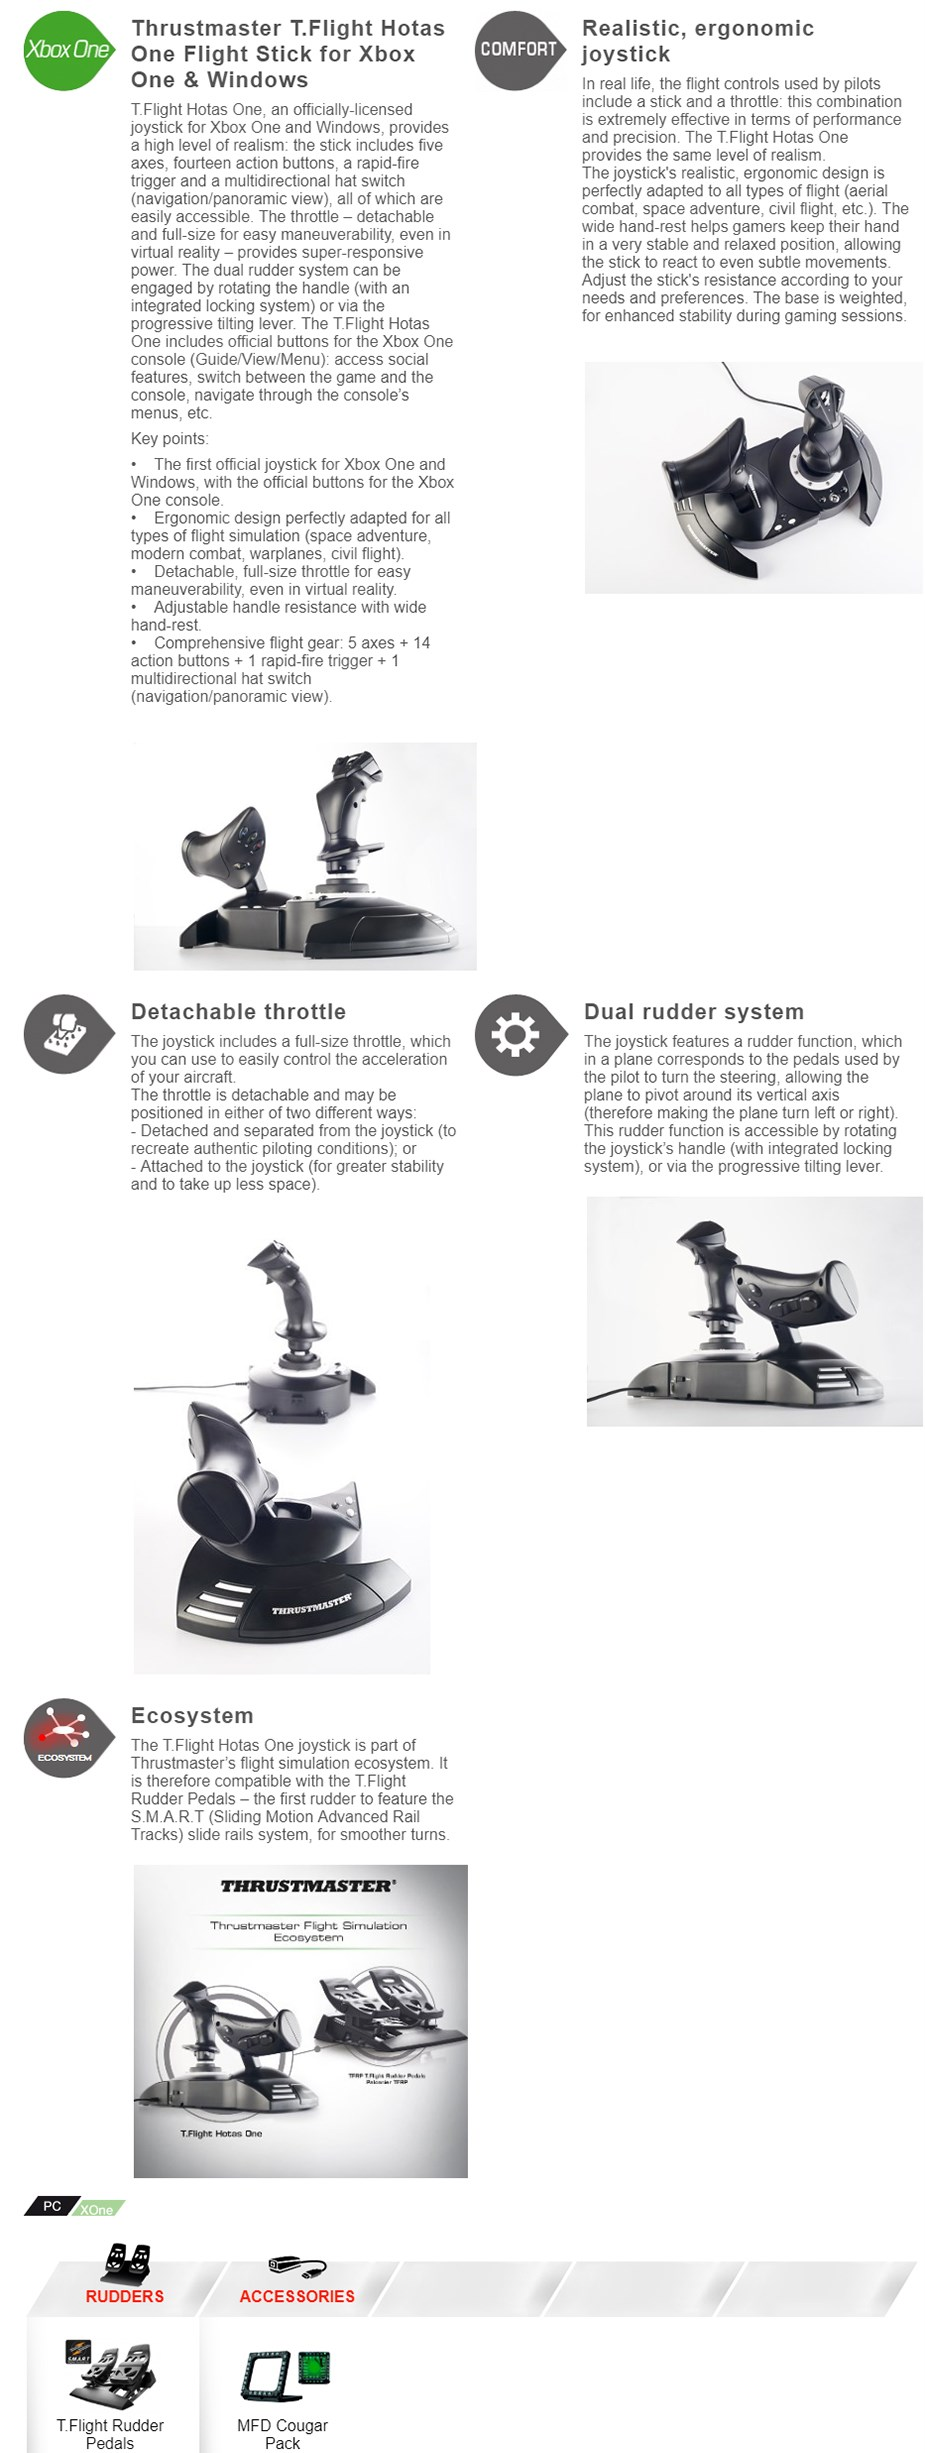 Thrustmaster T Flight HOTAS One Joystick For PC & Xbox One